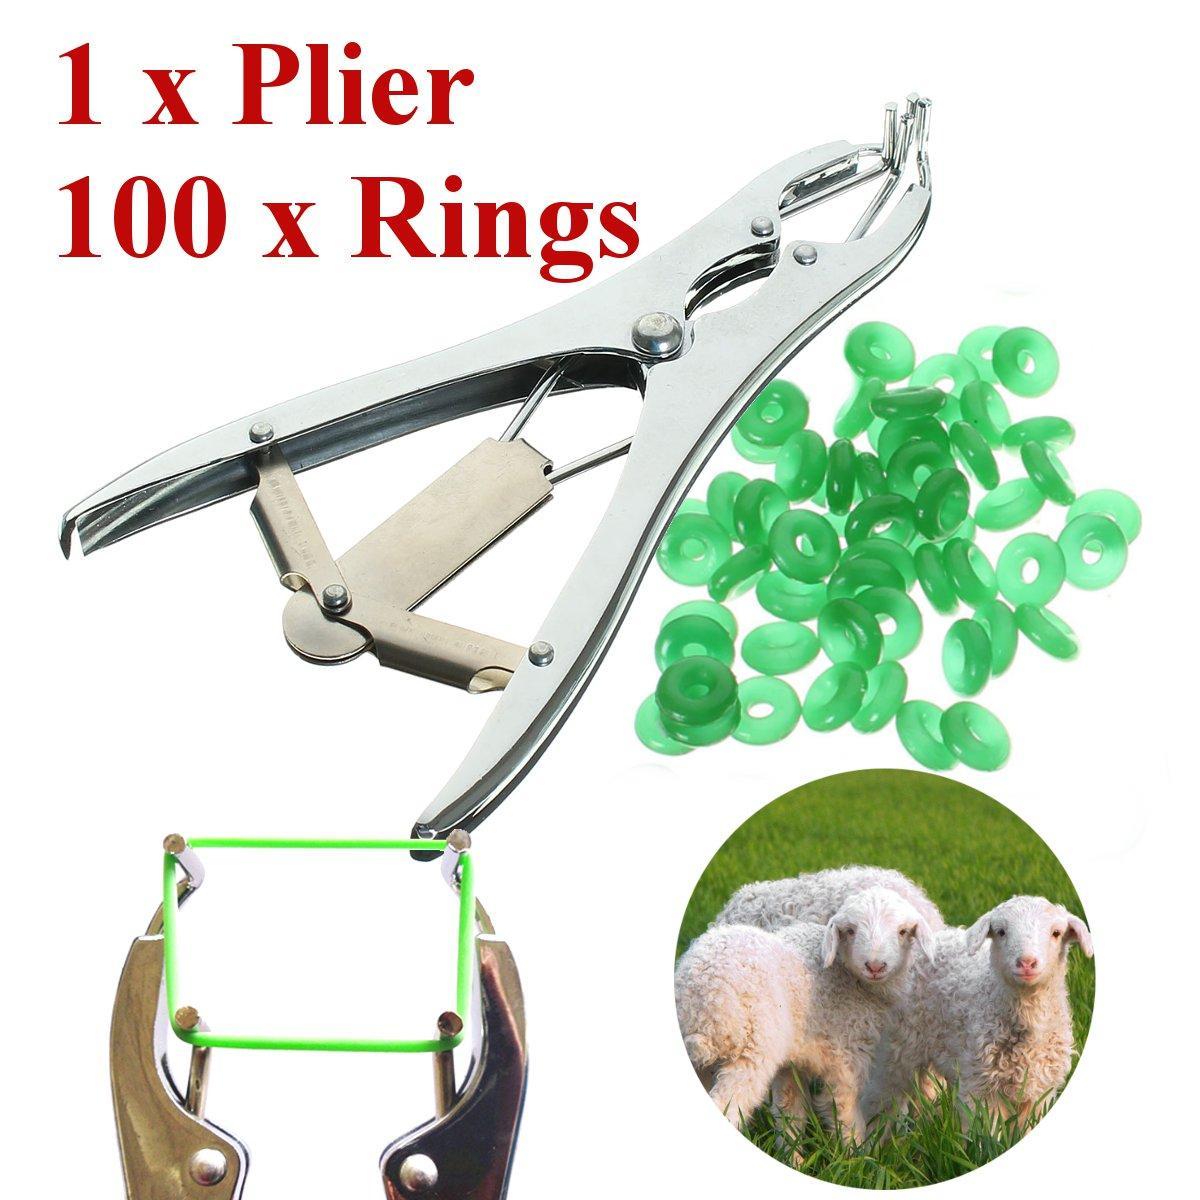 Farming Animal Equipment Tools Pigs Cattle Sheep Castration Pliers Dilation  Forceps Severed Tail Ring Pliers /100 Rings